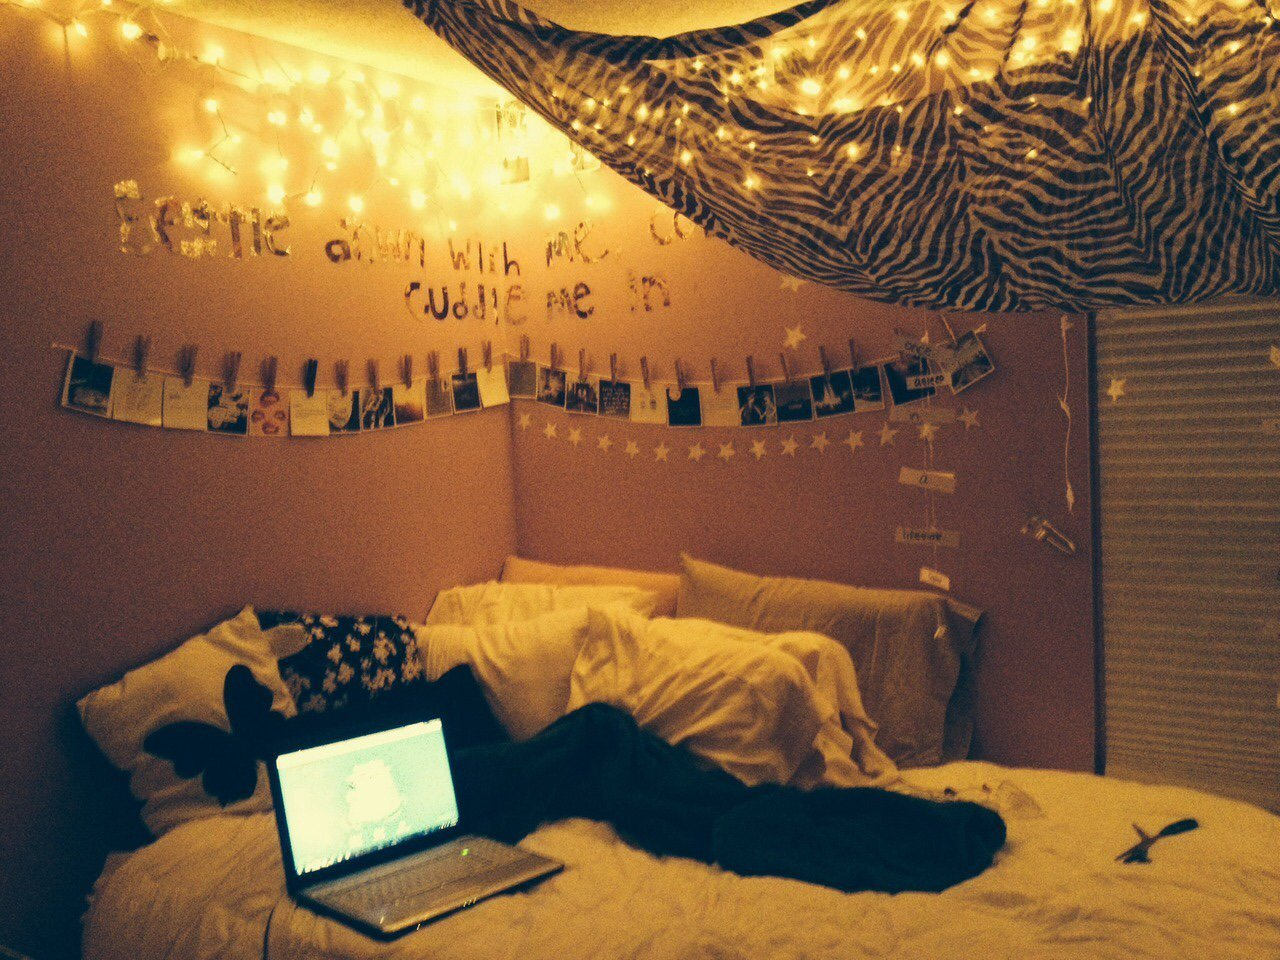 Bedroom fairy lights tumblr - Bedroom Fairy Lights Tumblr Source Tumblr